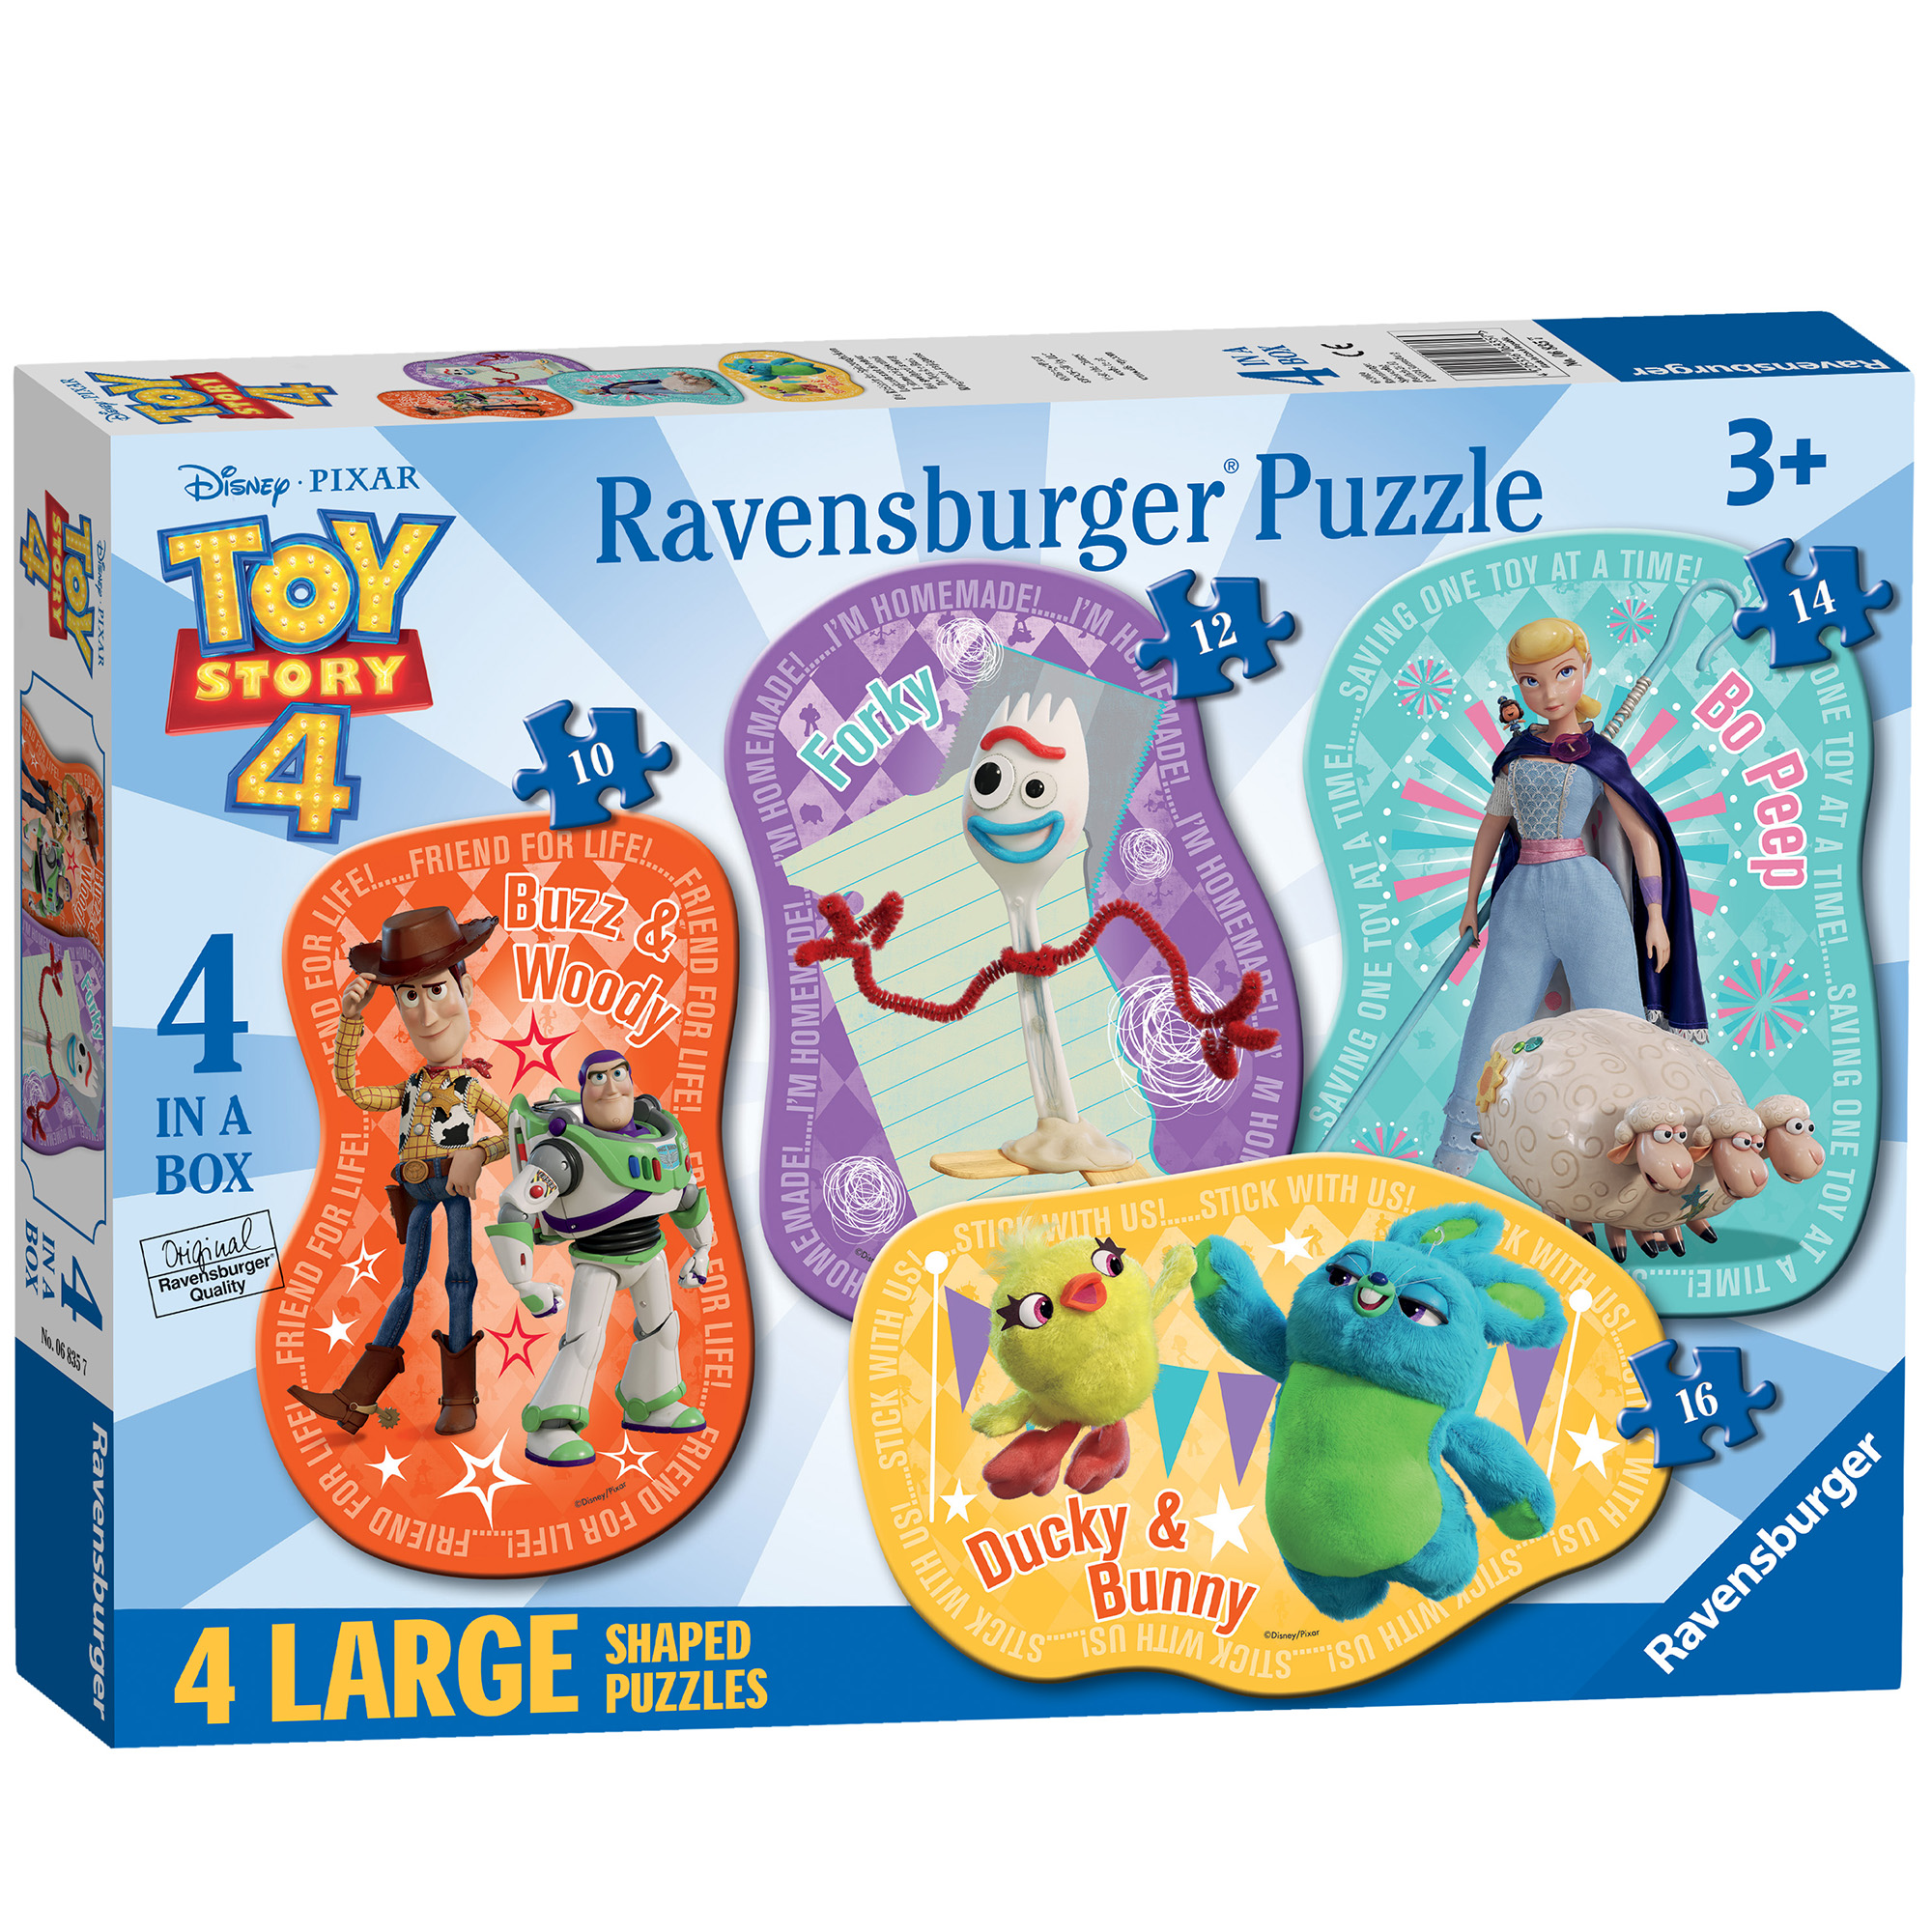 Picture of Ravensburger Disney Toy Story 4, 4 Large Puzzles